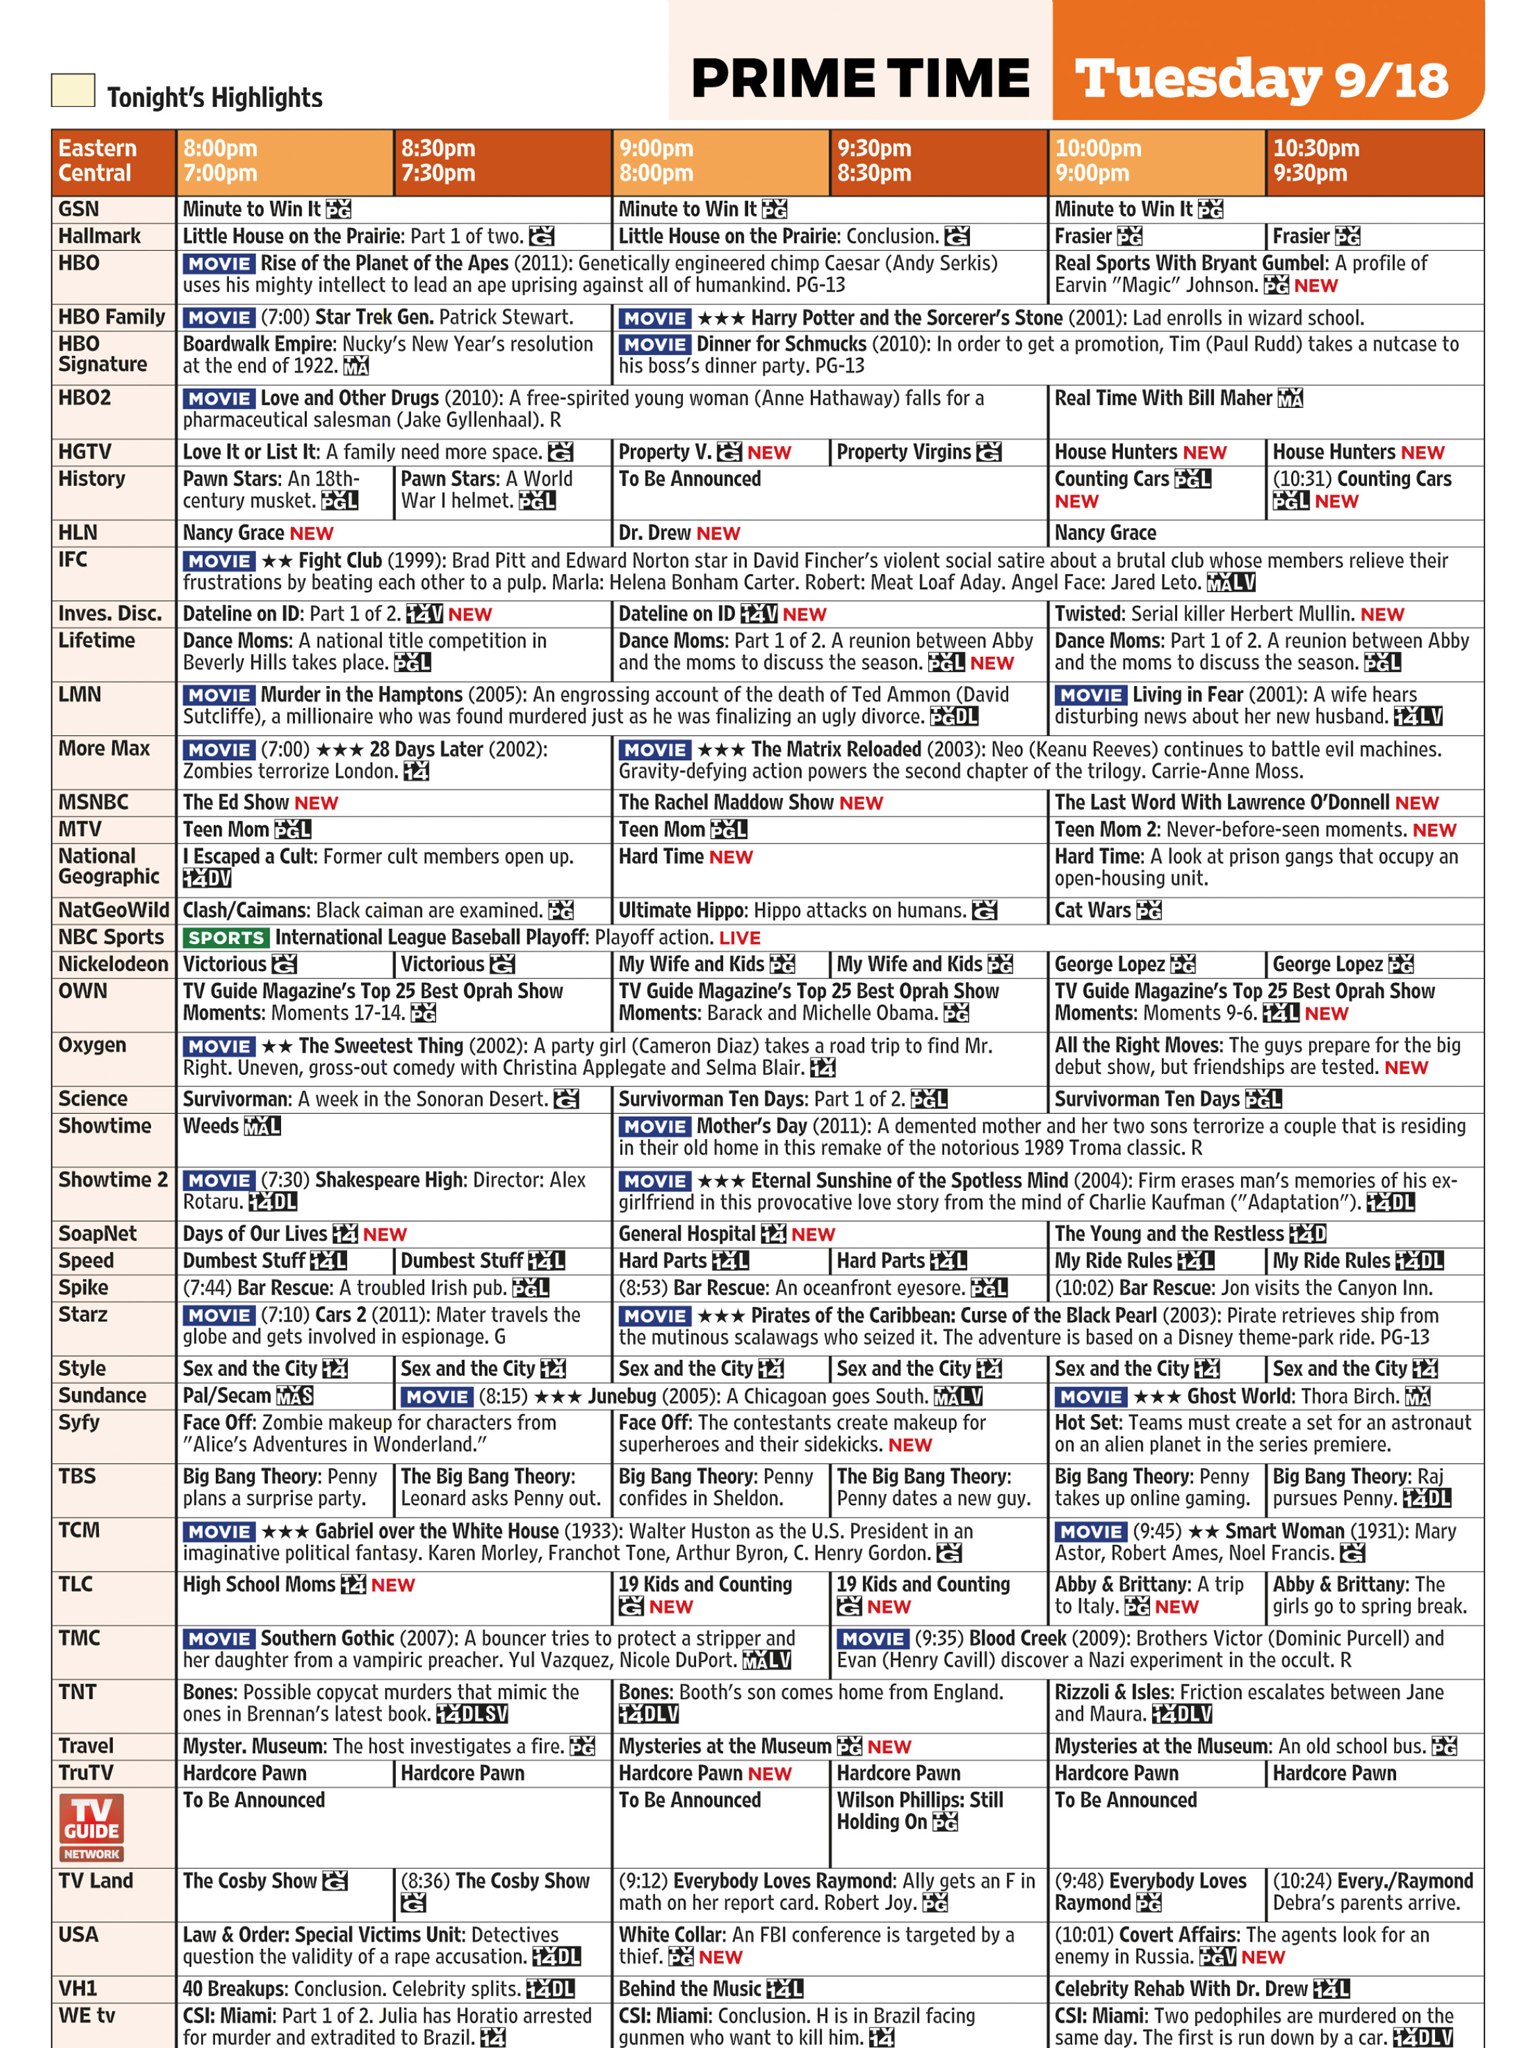 Adult Channel - TV Listings Guide - On